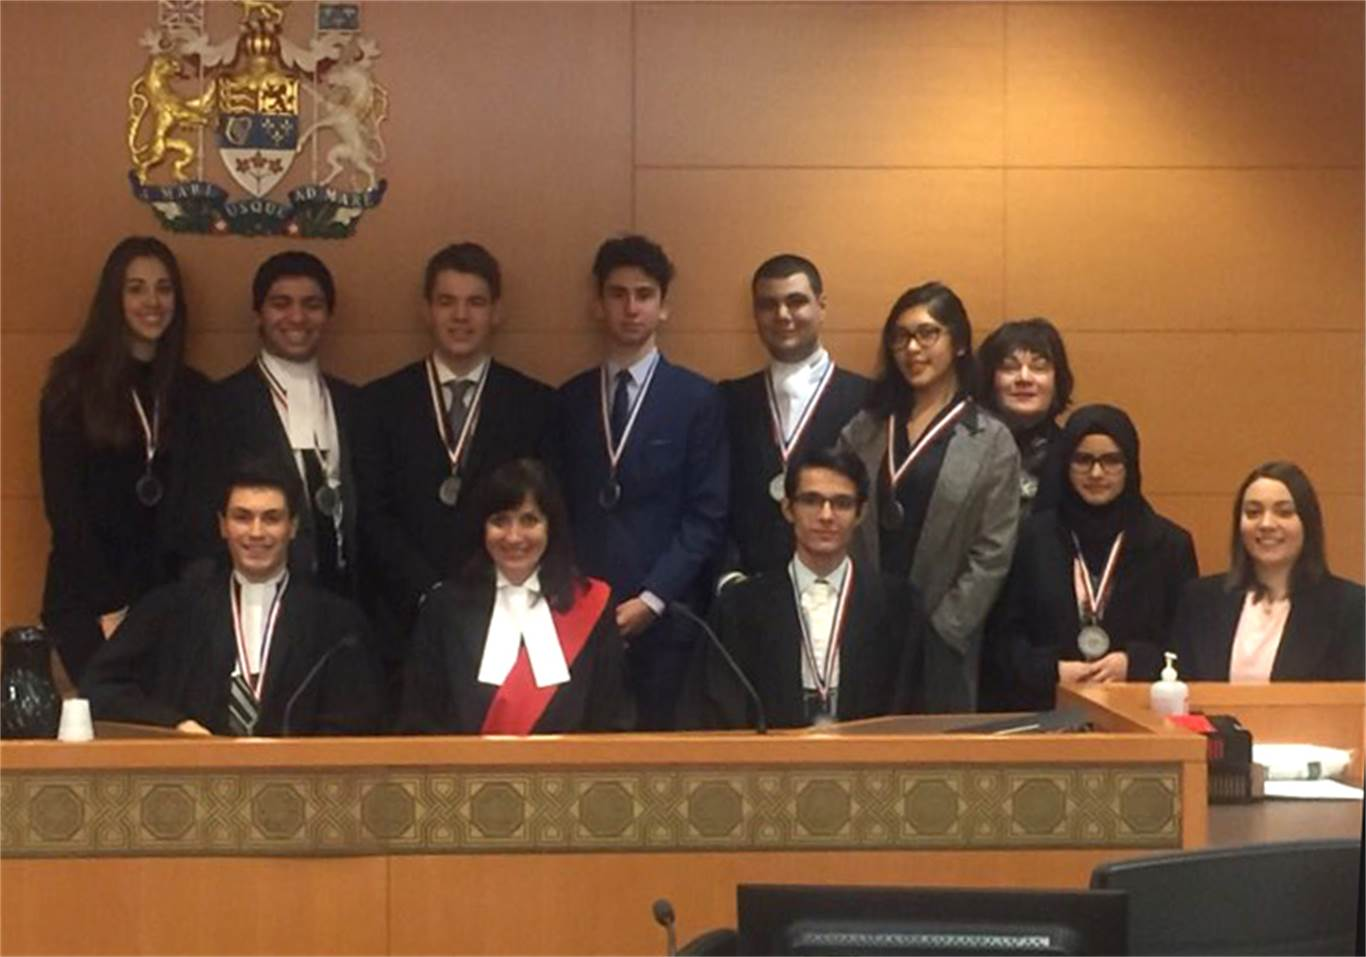 The Mock Trial Team from St. Thomas More Catholic Secondary School finished 2nd in this year's Competitive Mock Trials at the John Sopinka Courthouse on April 6 & 7.